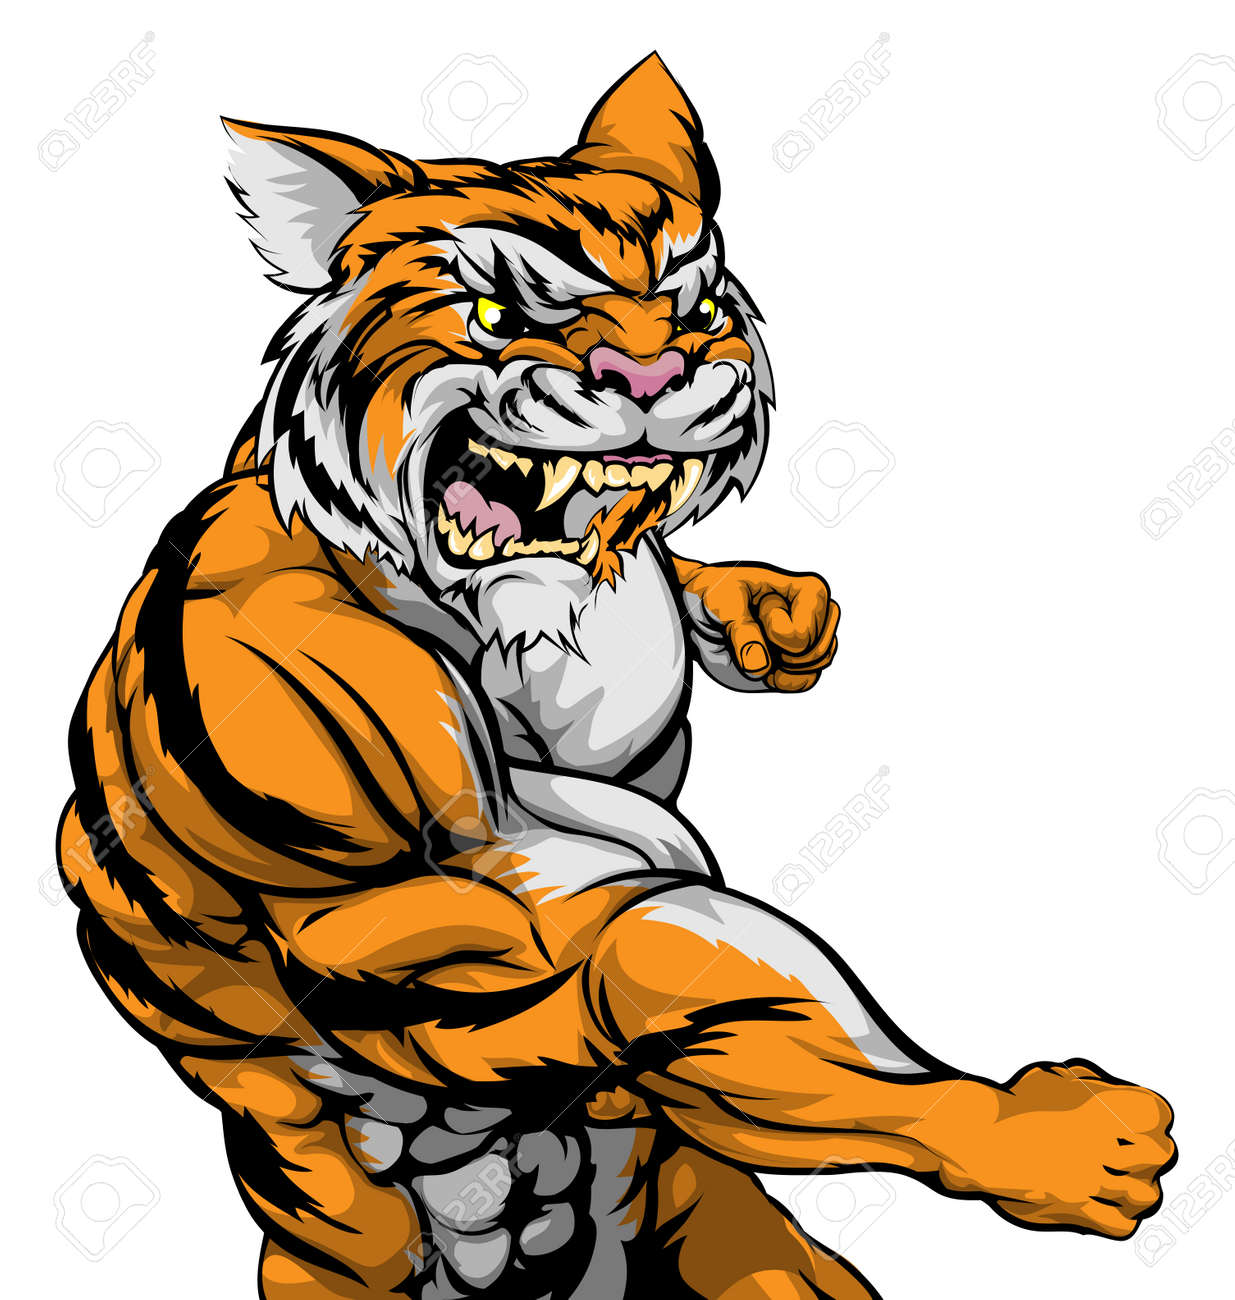 a tough muscular tiger character sports mascot attacking with rh 123rf com Tiger Clip Art Black and White Tiger Mascot Clip Art